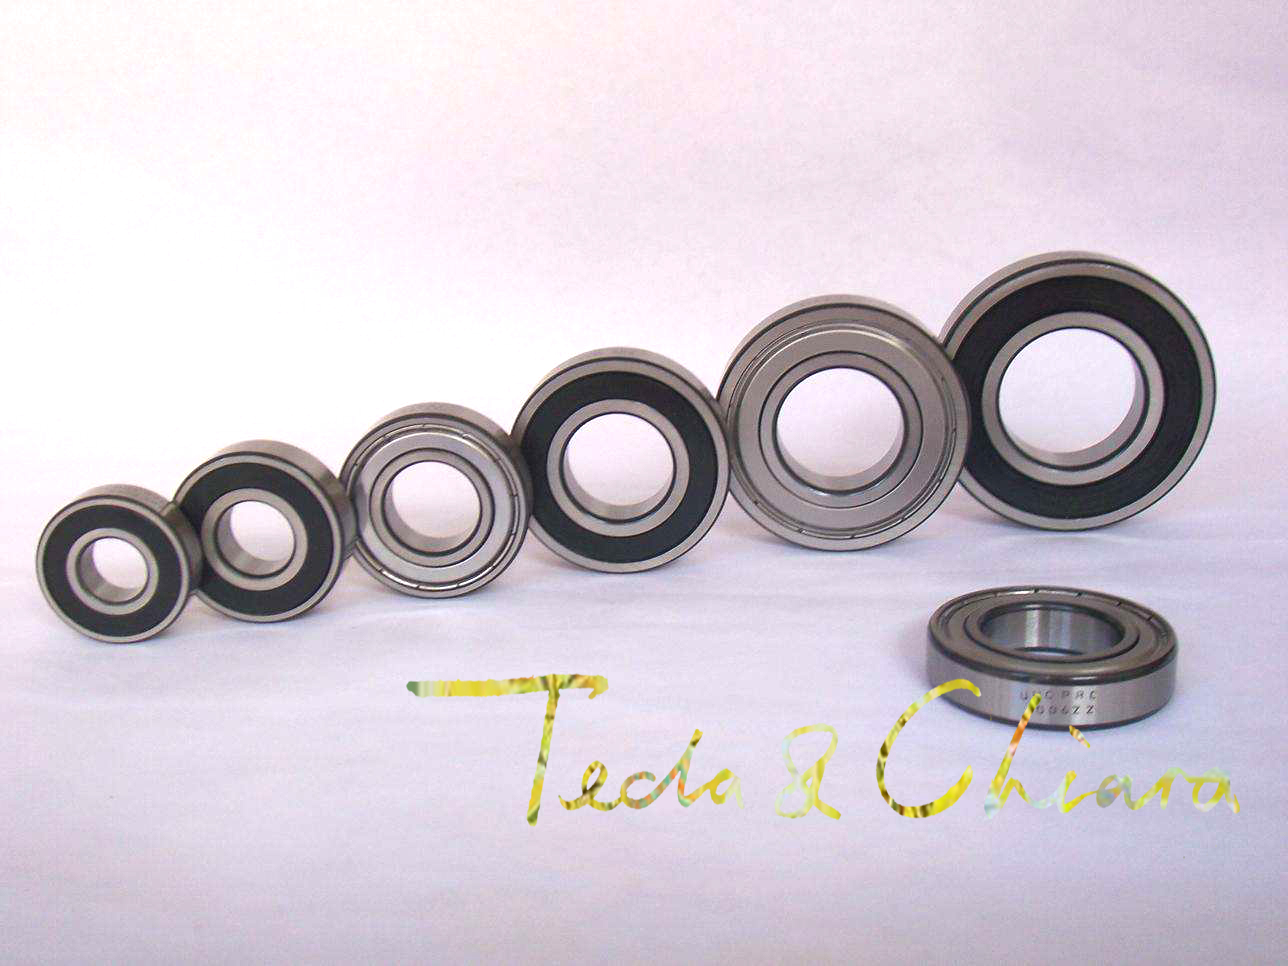 6202 6202ZZ 6202RS 6202-2Z 6202Z 6202-2RS ZZ RS RZ 2RZ Deep Groove Ball Bearings 15 x 35 x 11mm High Quality пилочка для ногтей leslie store 10 4sides 10pcs lot